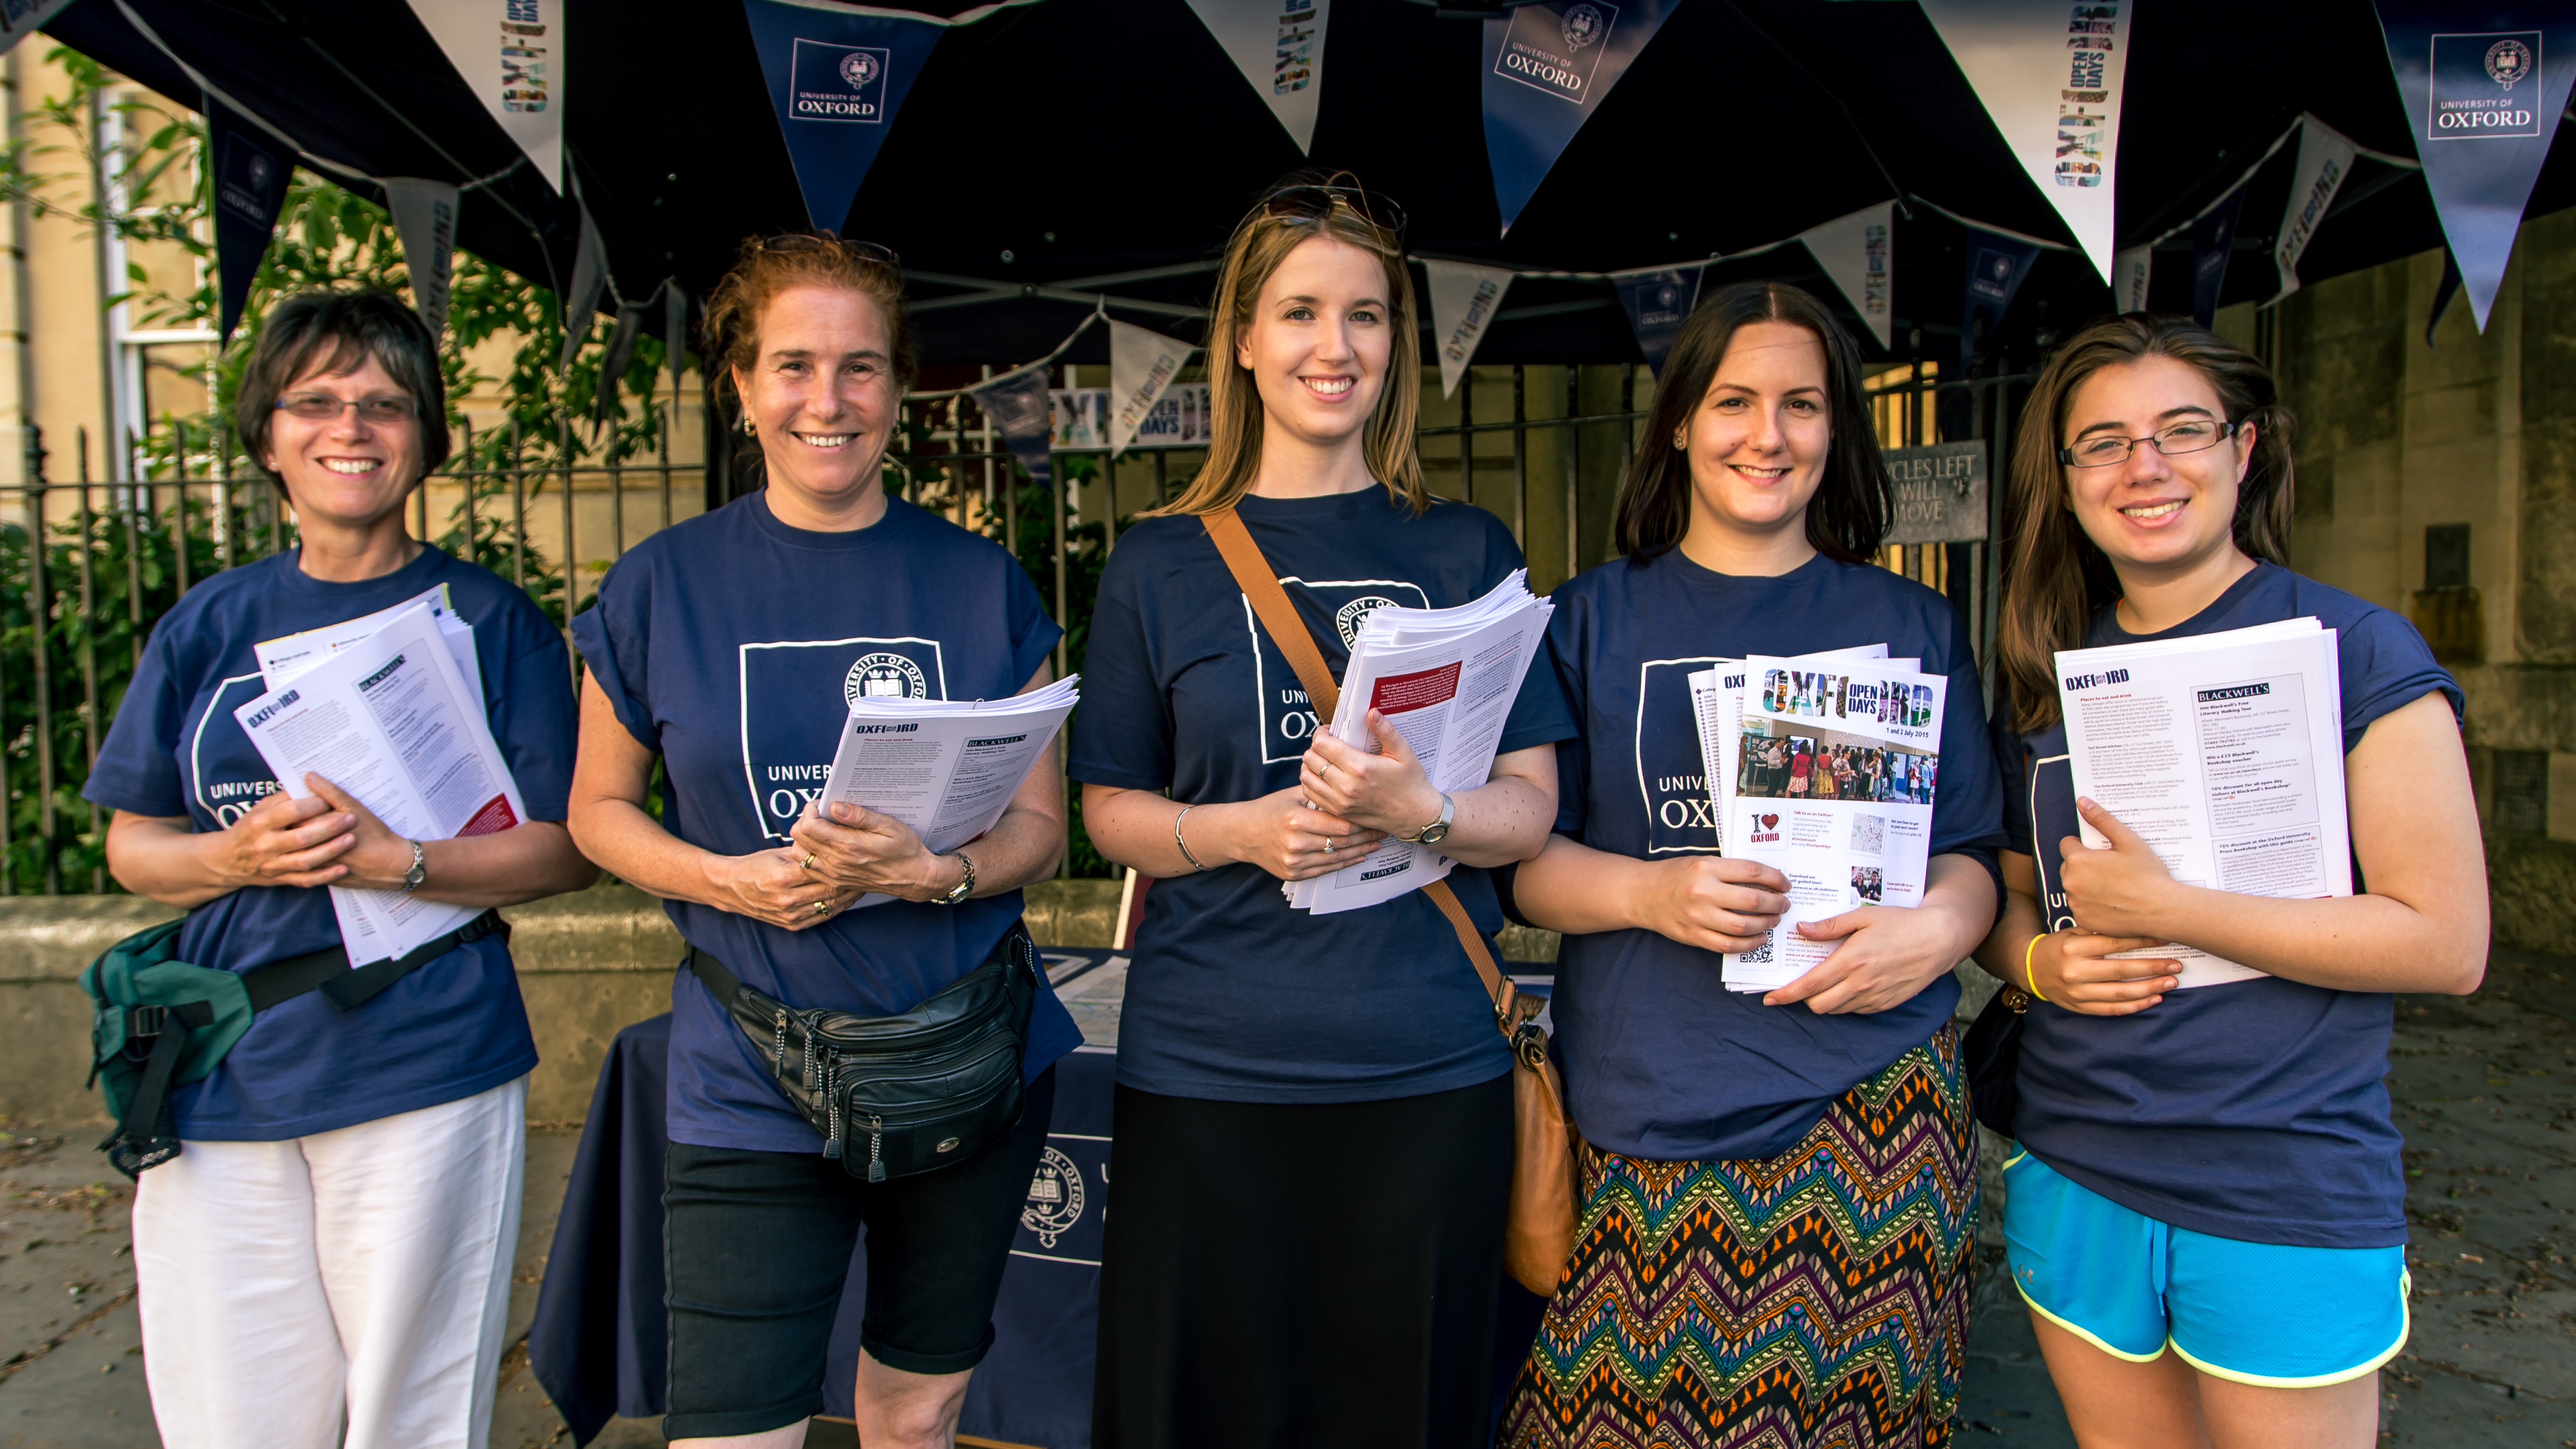 Undergraduate Open Days give visitors a taste of life at Oxford